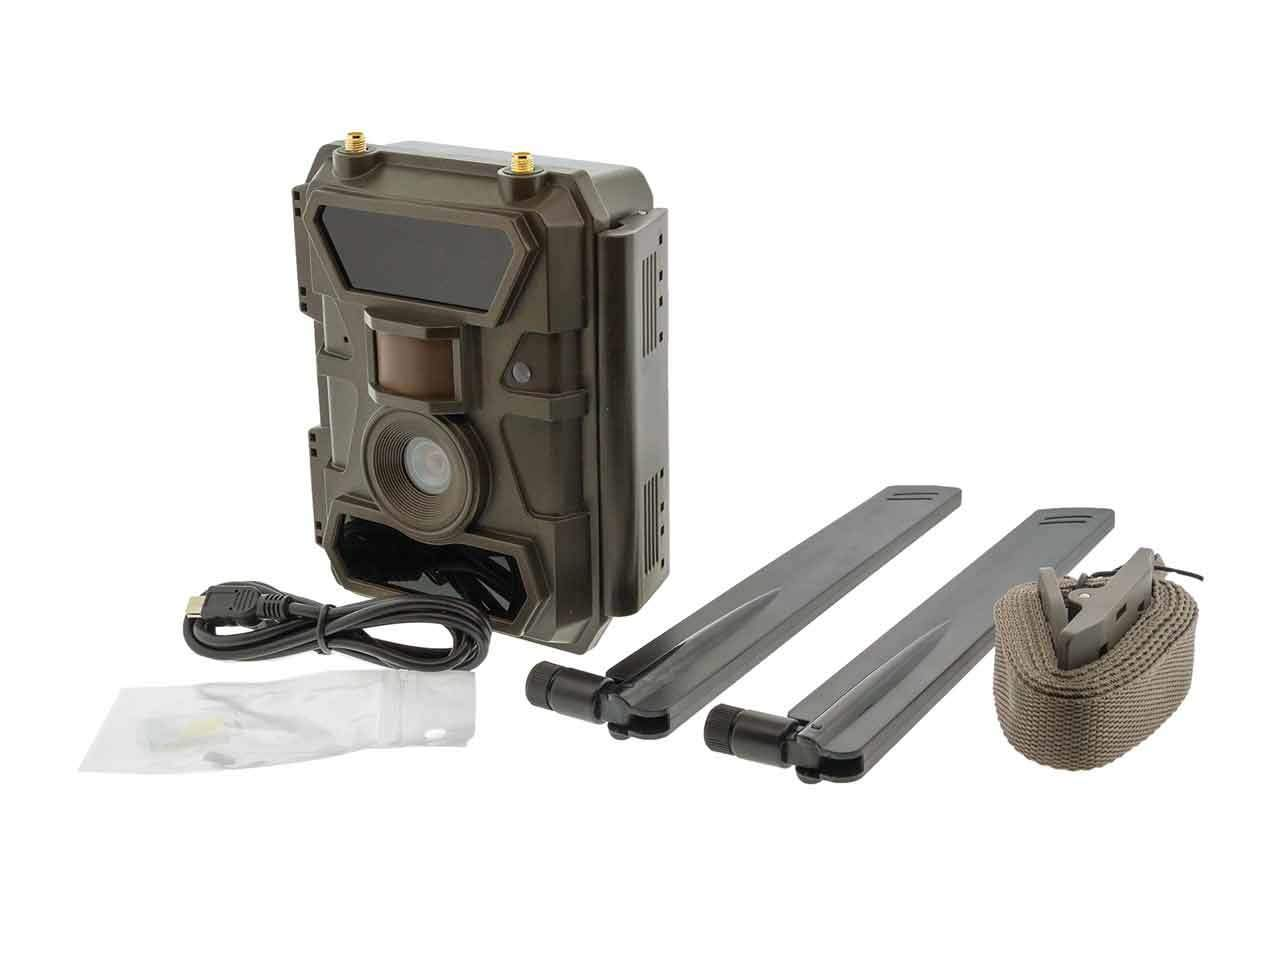 Remote Scout Cellular 4G Outdoor Camera - 4G Trail Camera - Security Camera - No Local Internet Required! by Brickhouse Security